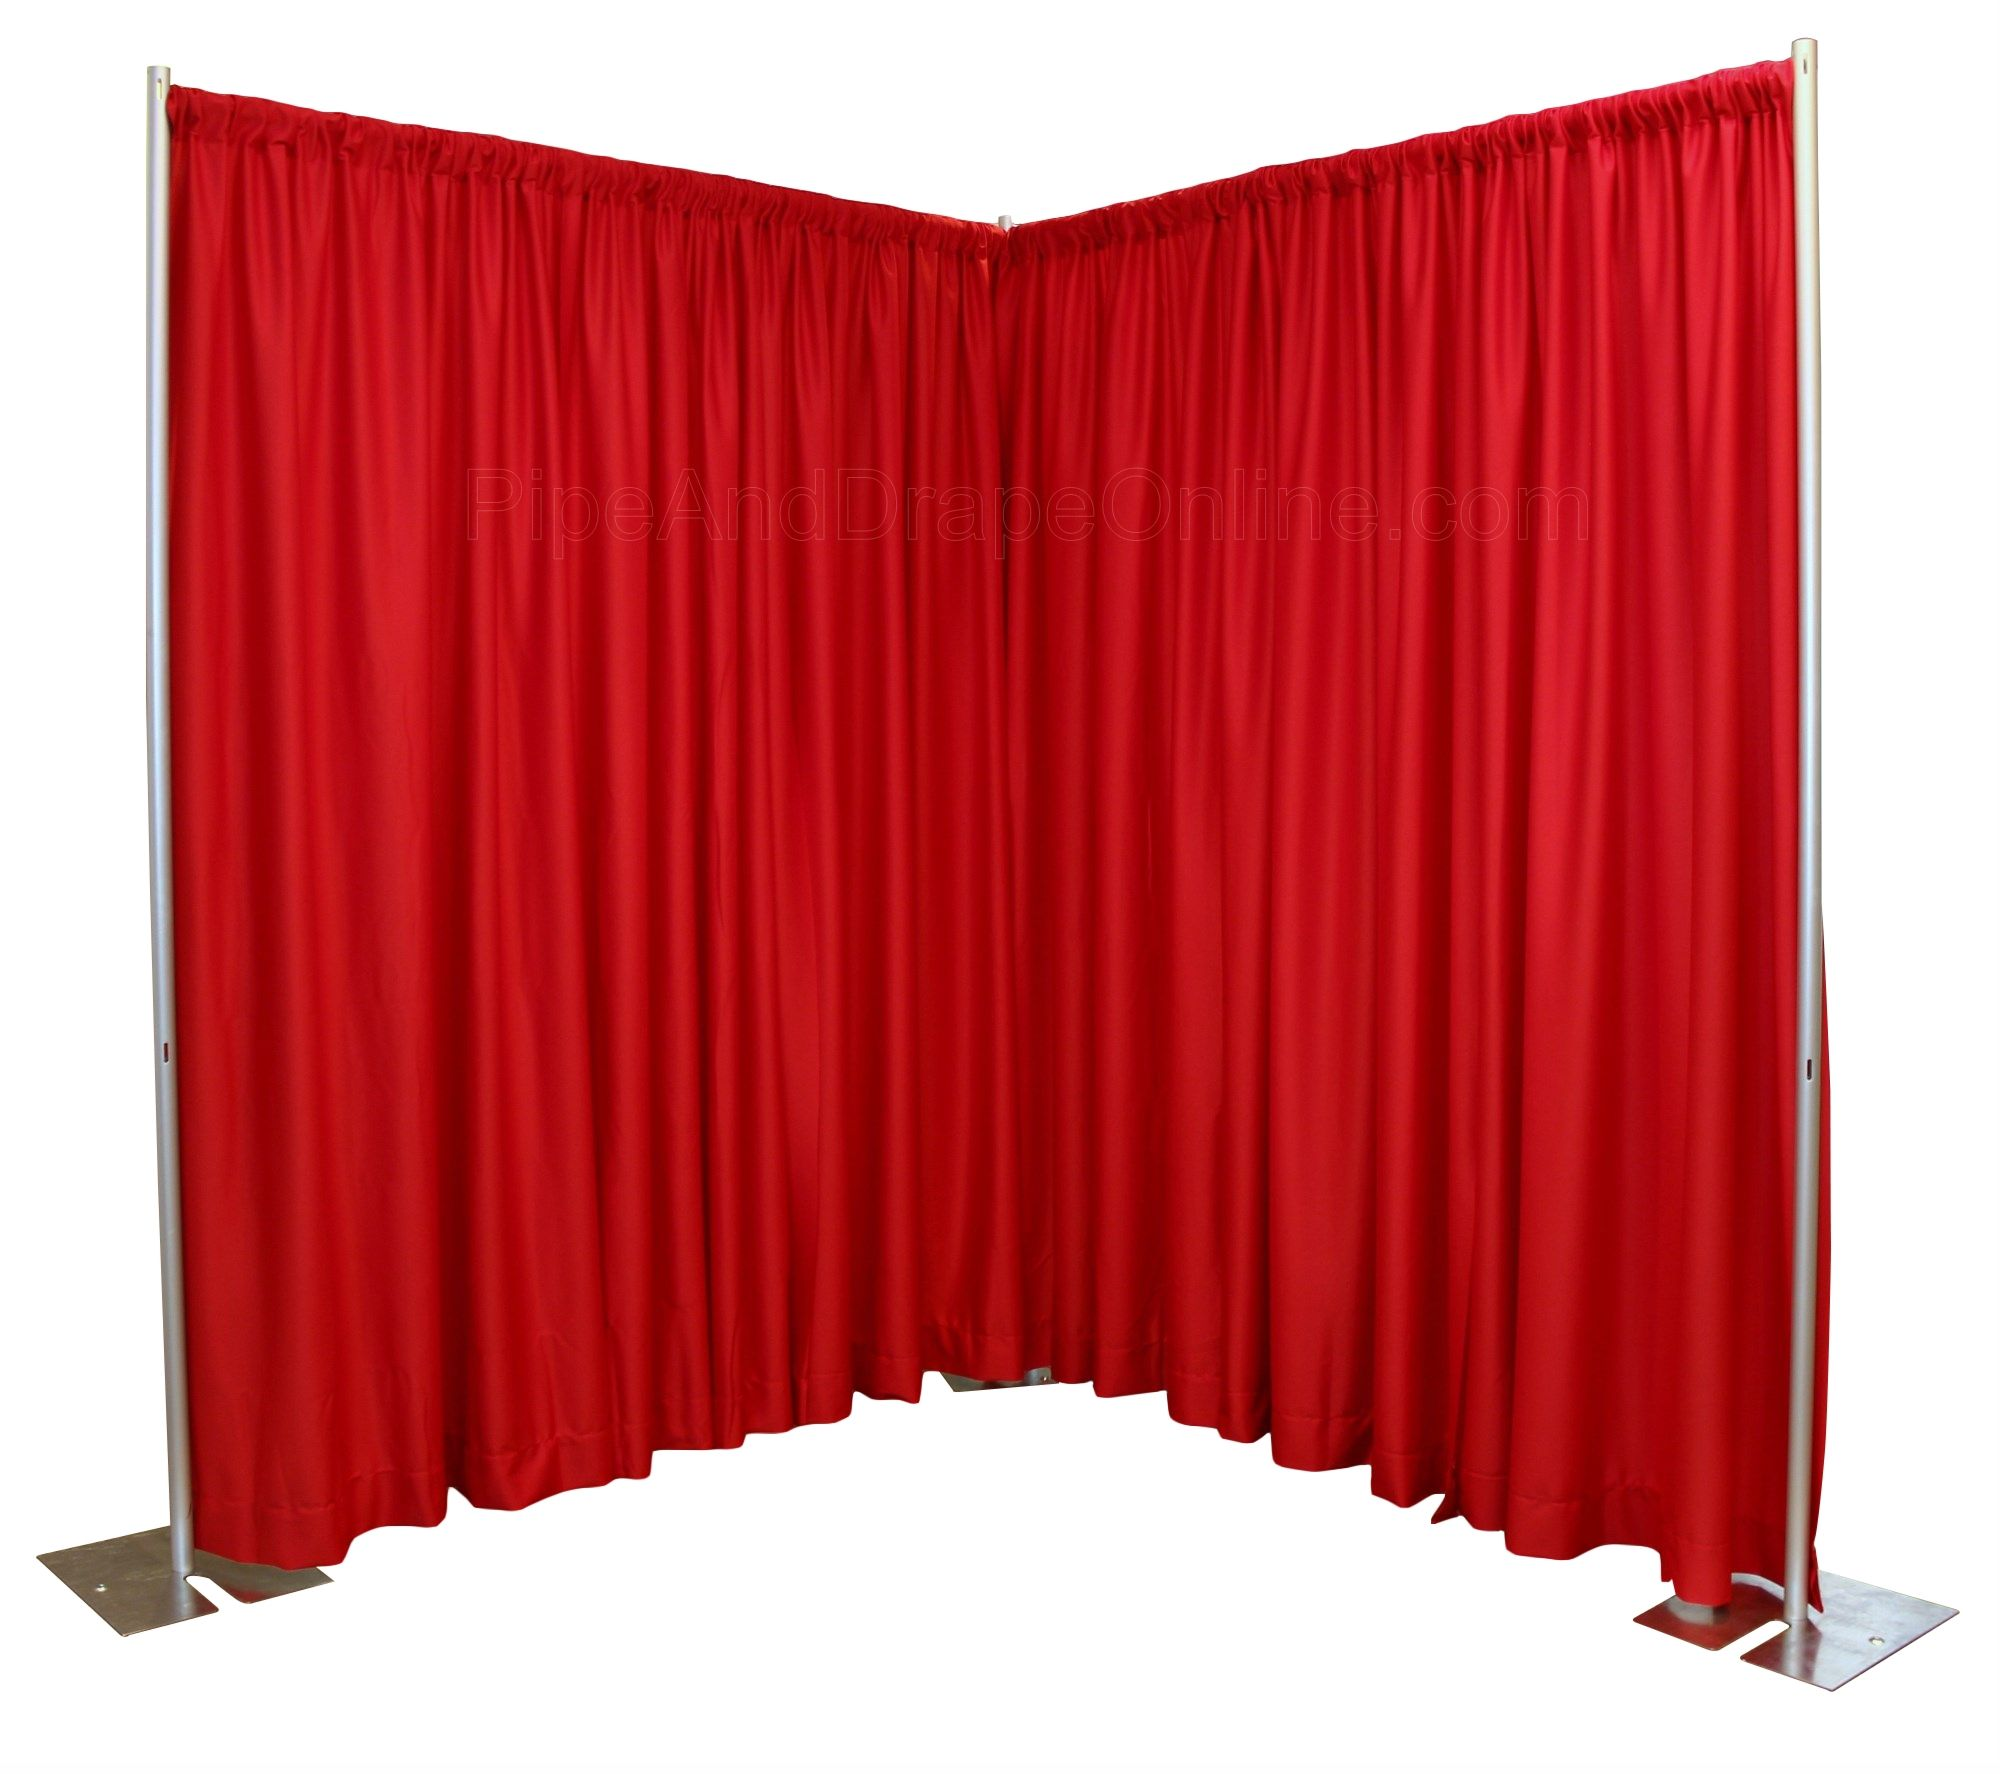 and kits kit pipe drapes online drape accessories